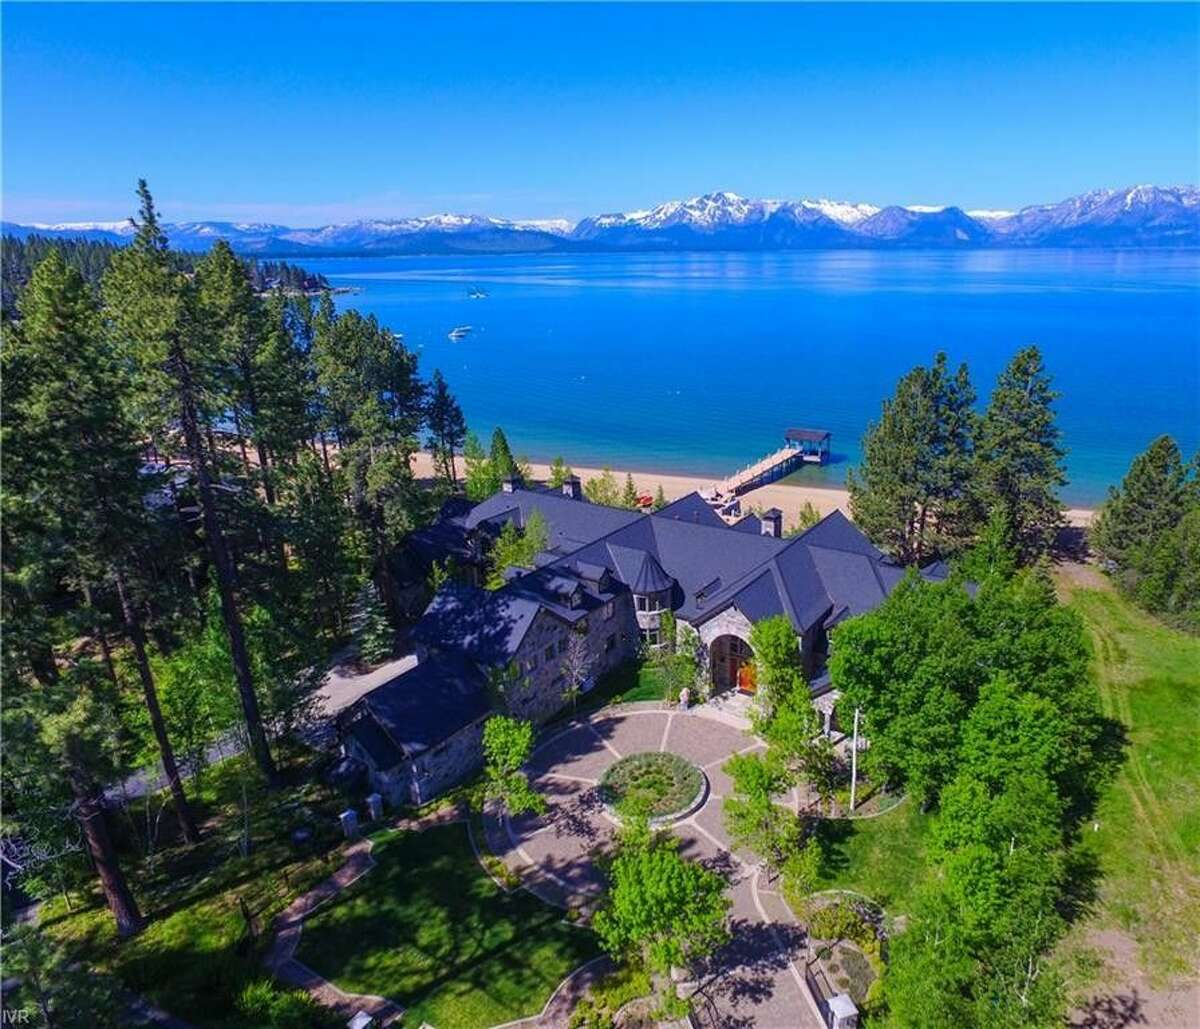 The most expensive sale in Tahoe this year was this home on Sierra Sunset Lane in Maria Bay, NV. The price was $38 million.